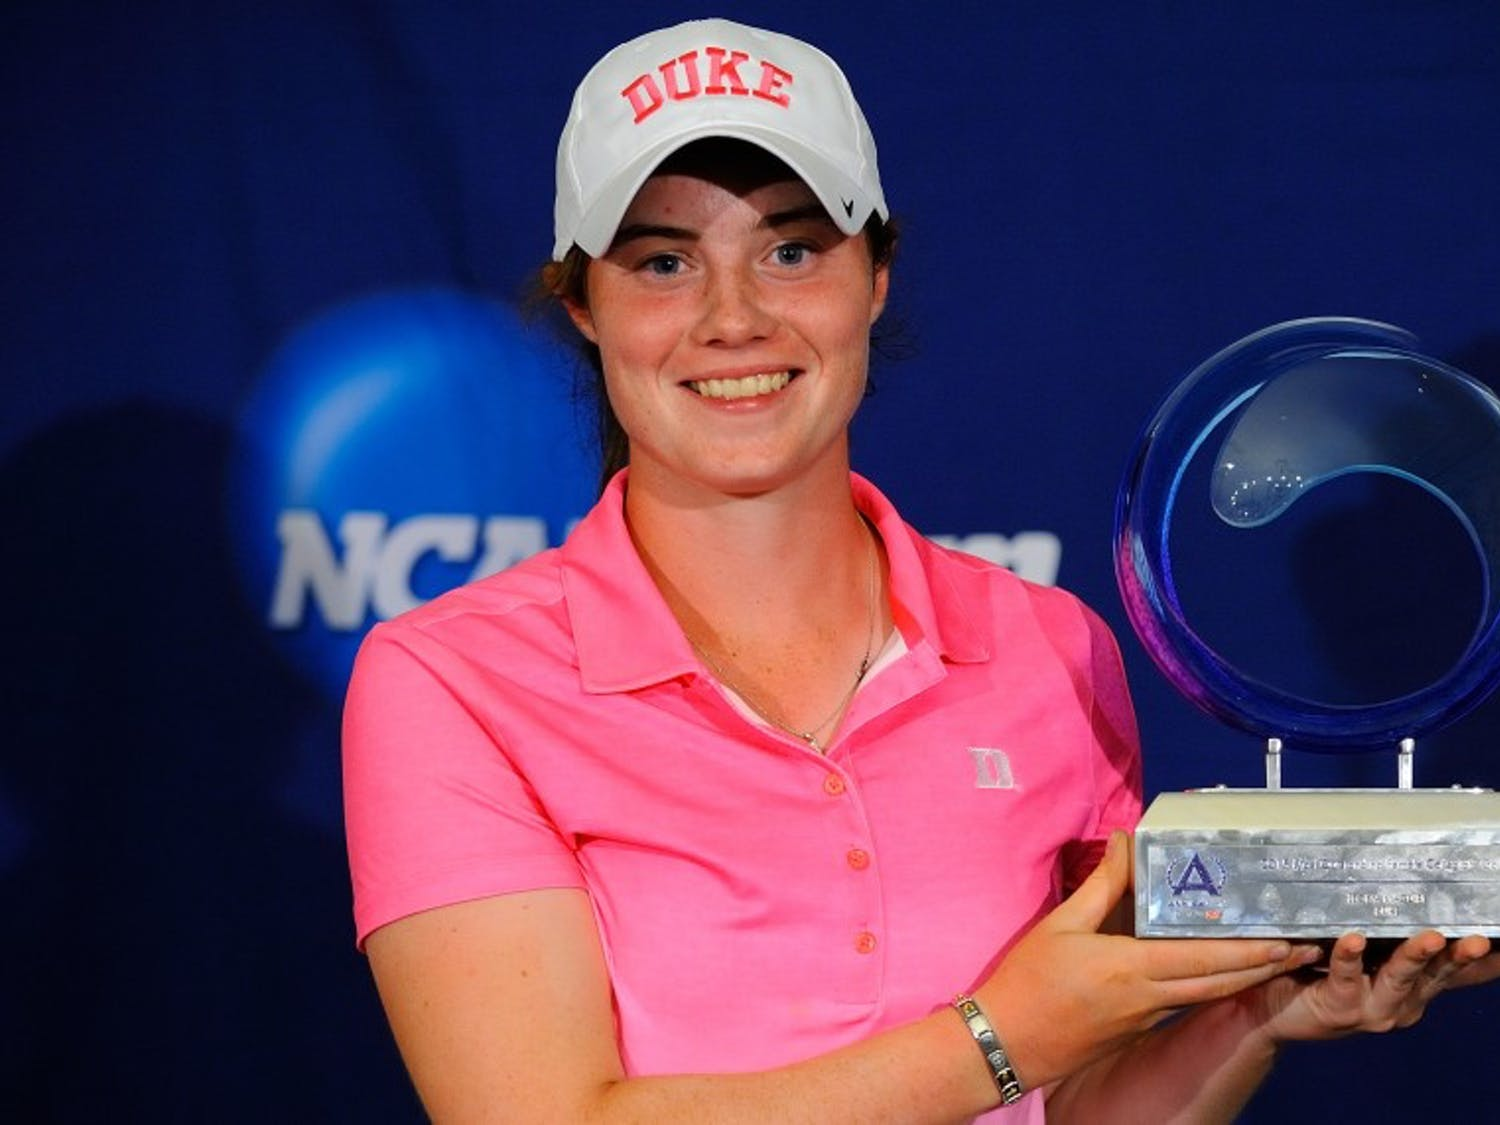 25 May 2015: Day four ended Monday with USC winning stroke play and Emma Talley of Alabama being crowned individual champion at the 2015 NCAA Women's Division I Golf Championships at  The Concession Golf Club in Bradenton, Florida.